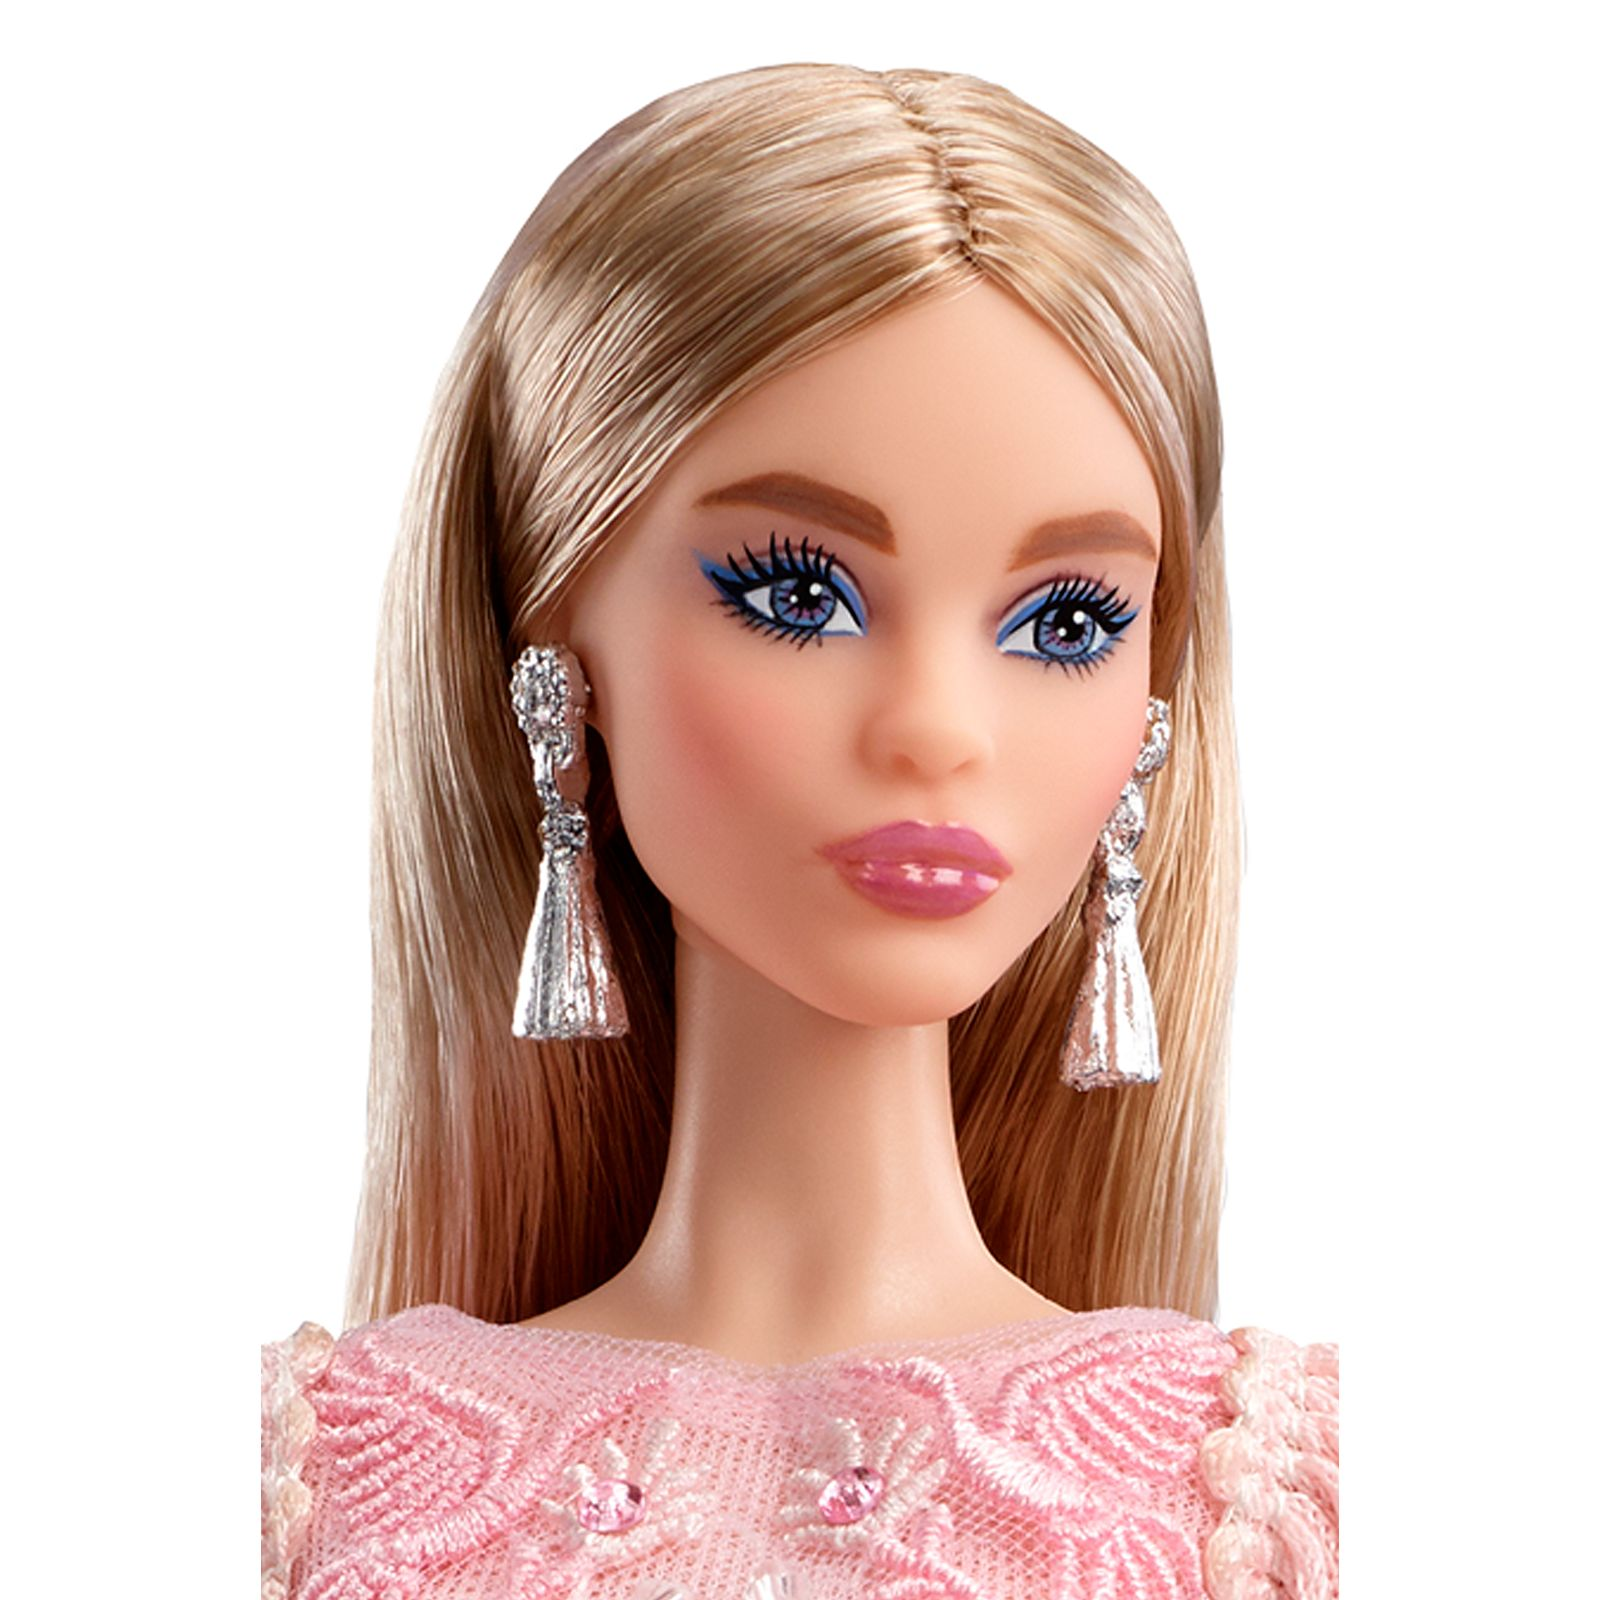 Blush Fringed Gown Barbie Doll - Perfectory Barbie Edition